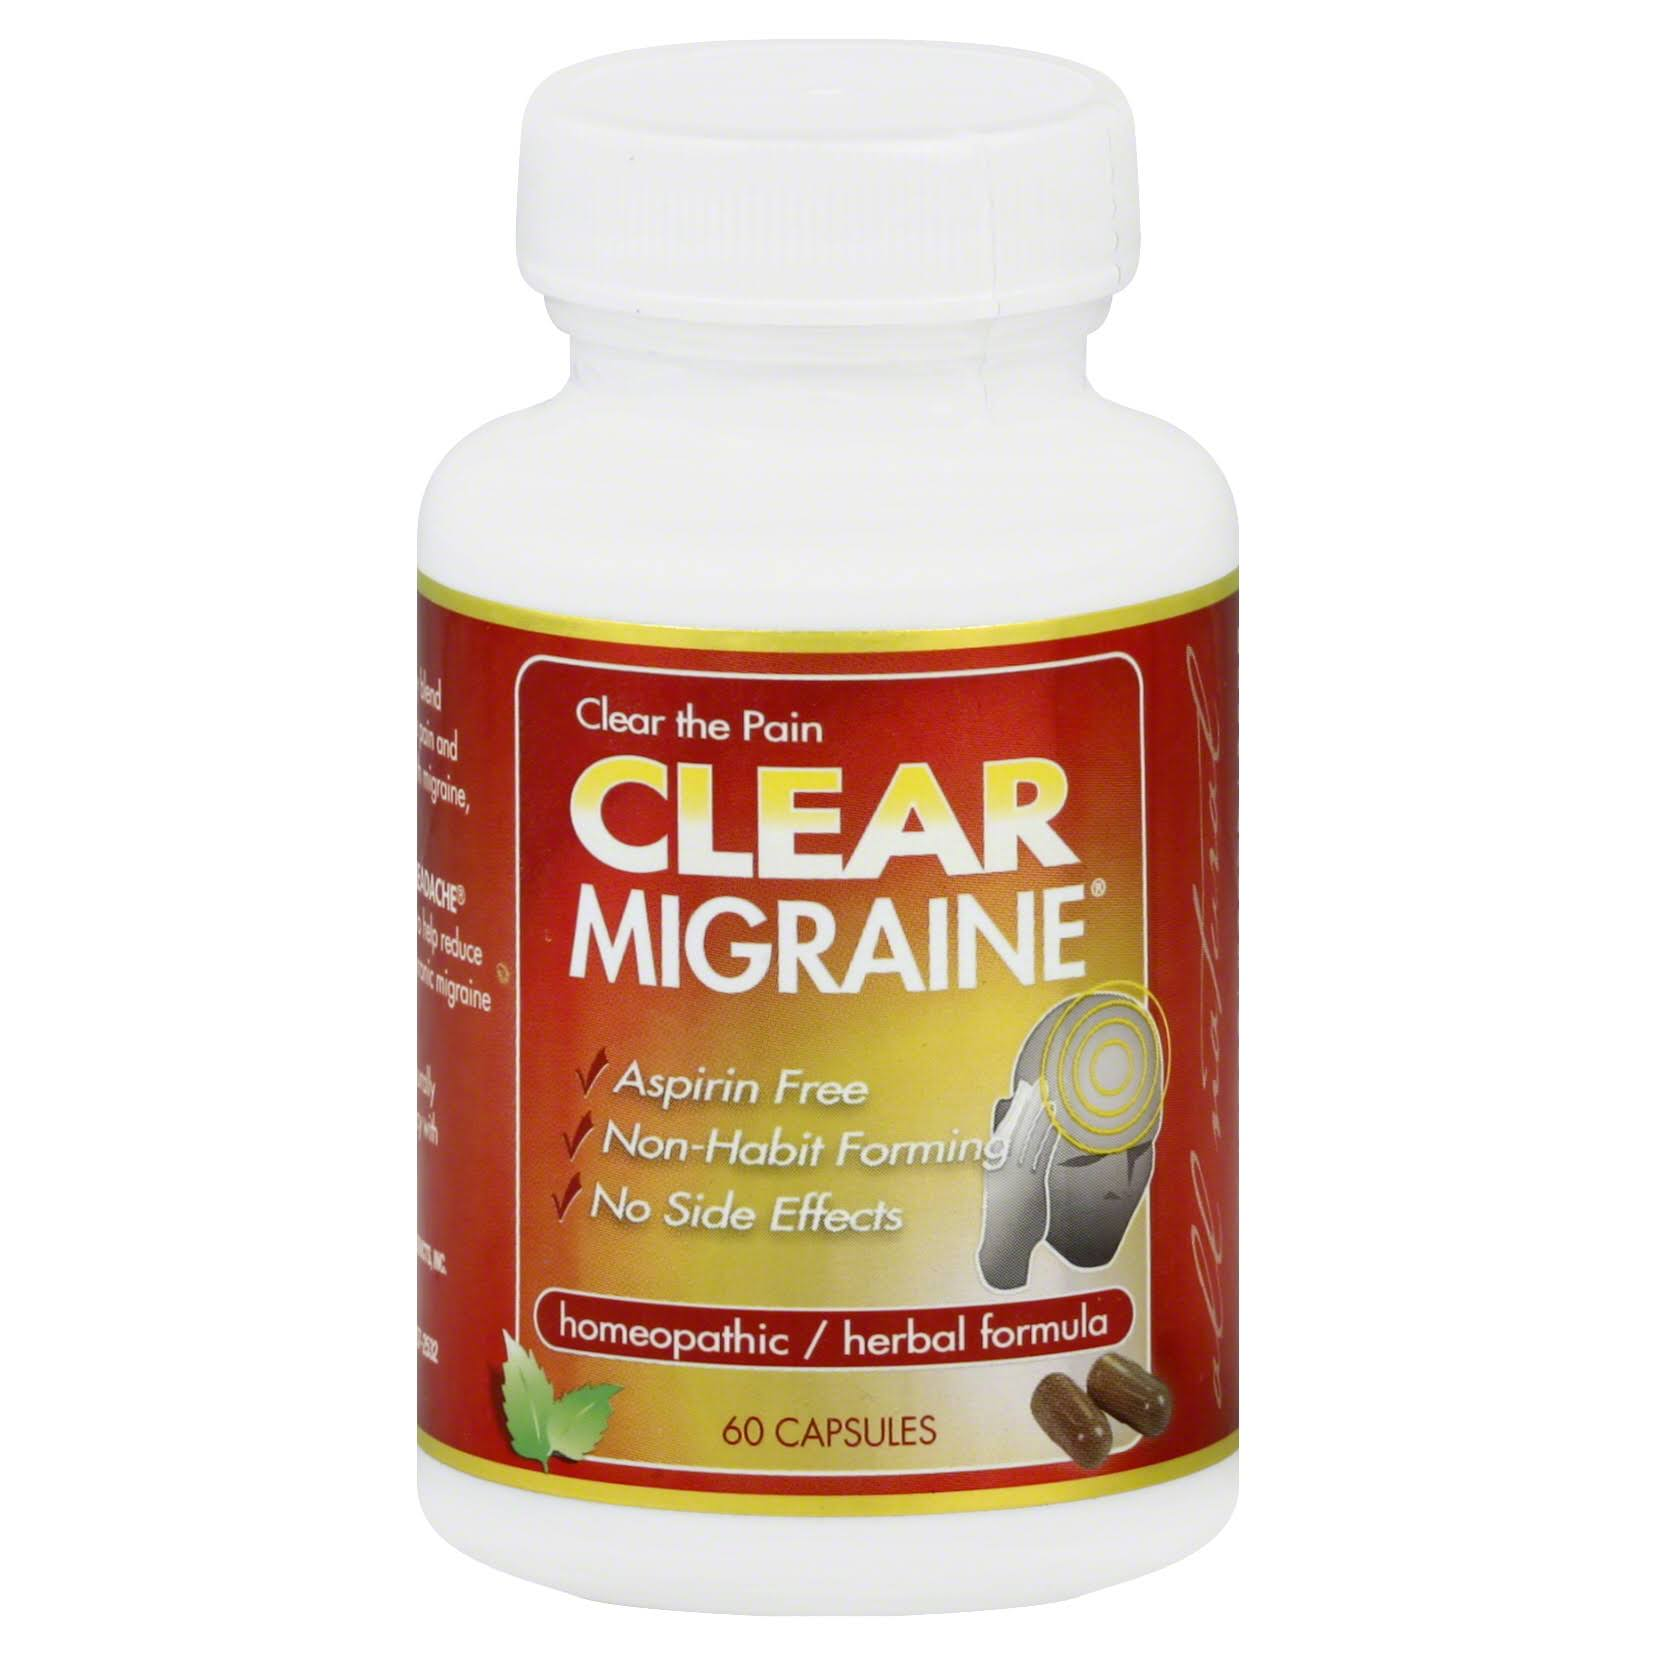 Clear Products Homeopathic Formula Migraine Capsules - 60 Count